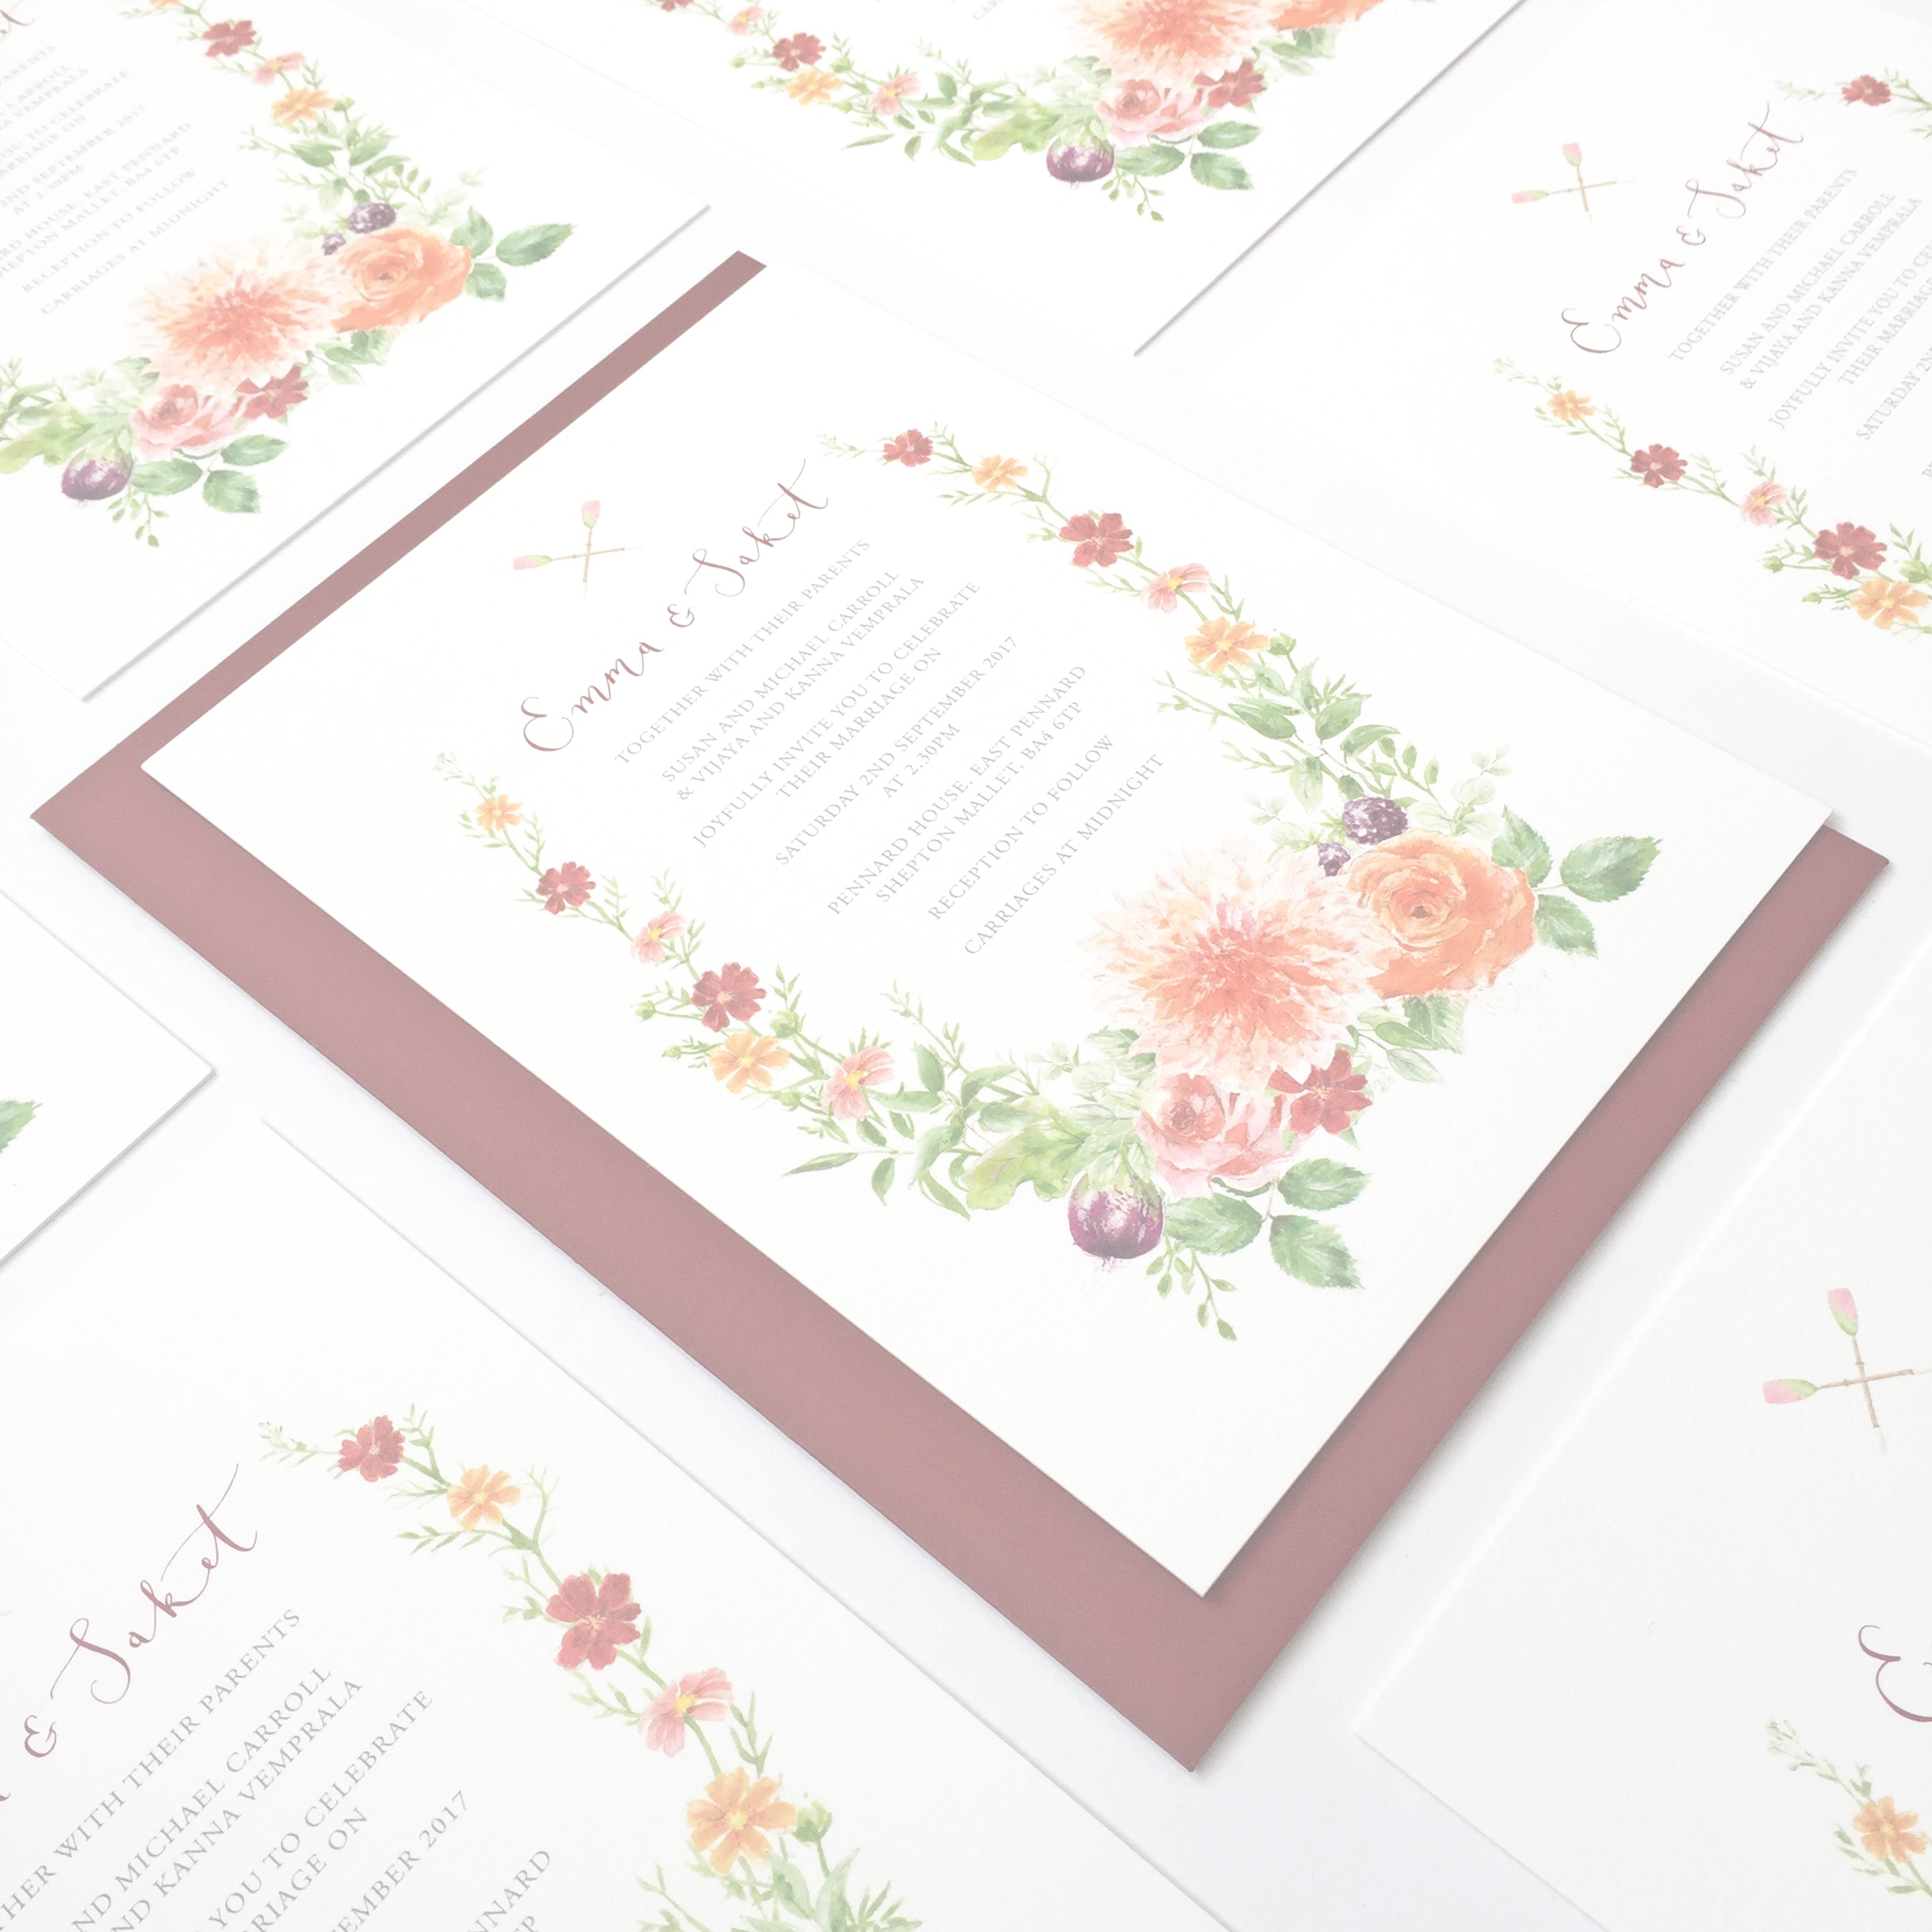 WEDDINGCOLLECTION - Pre-designed stationery suites by artist Suzie Foster